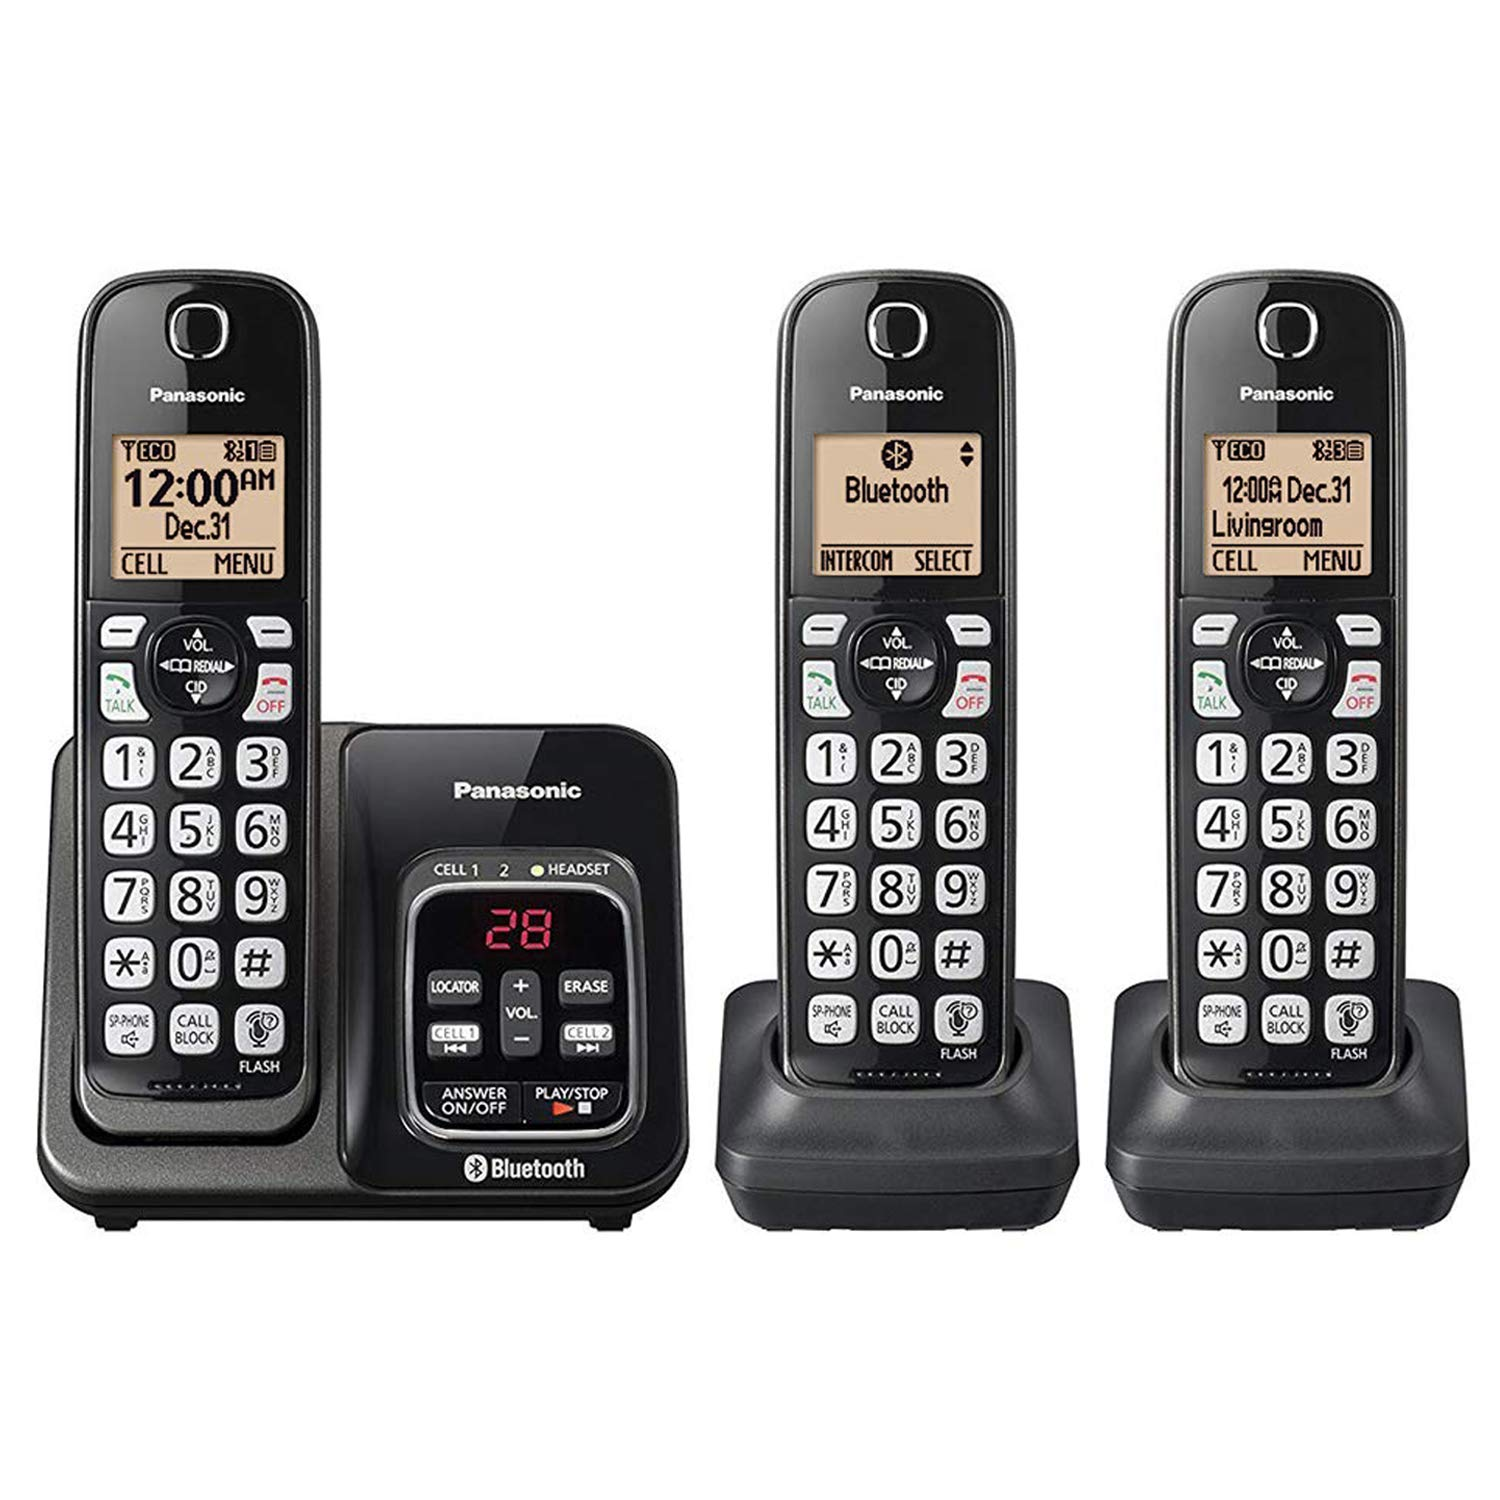 Panasonic KX-TG833SK Link2Cell Bluetooth with Talking Caller ID 3 Handset Cordless Phone (Renewed) by Panasonic (Image #1)